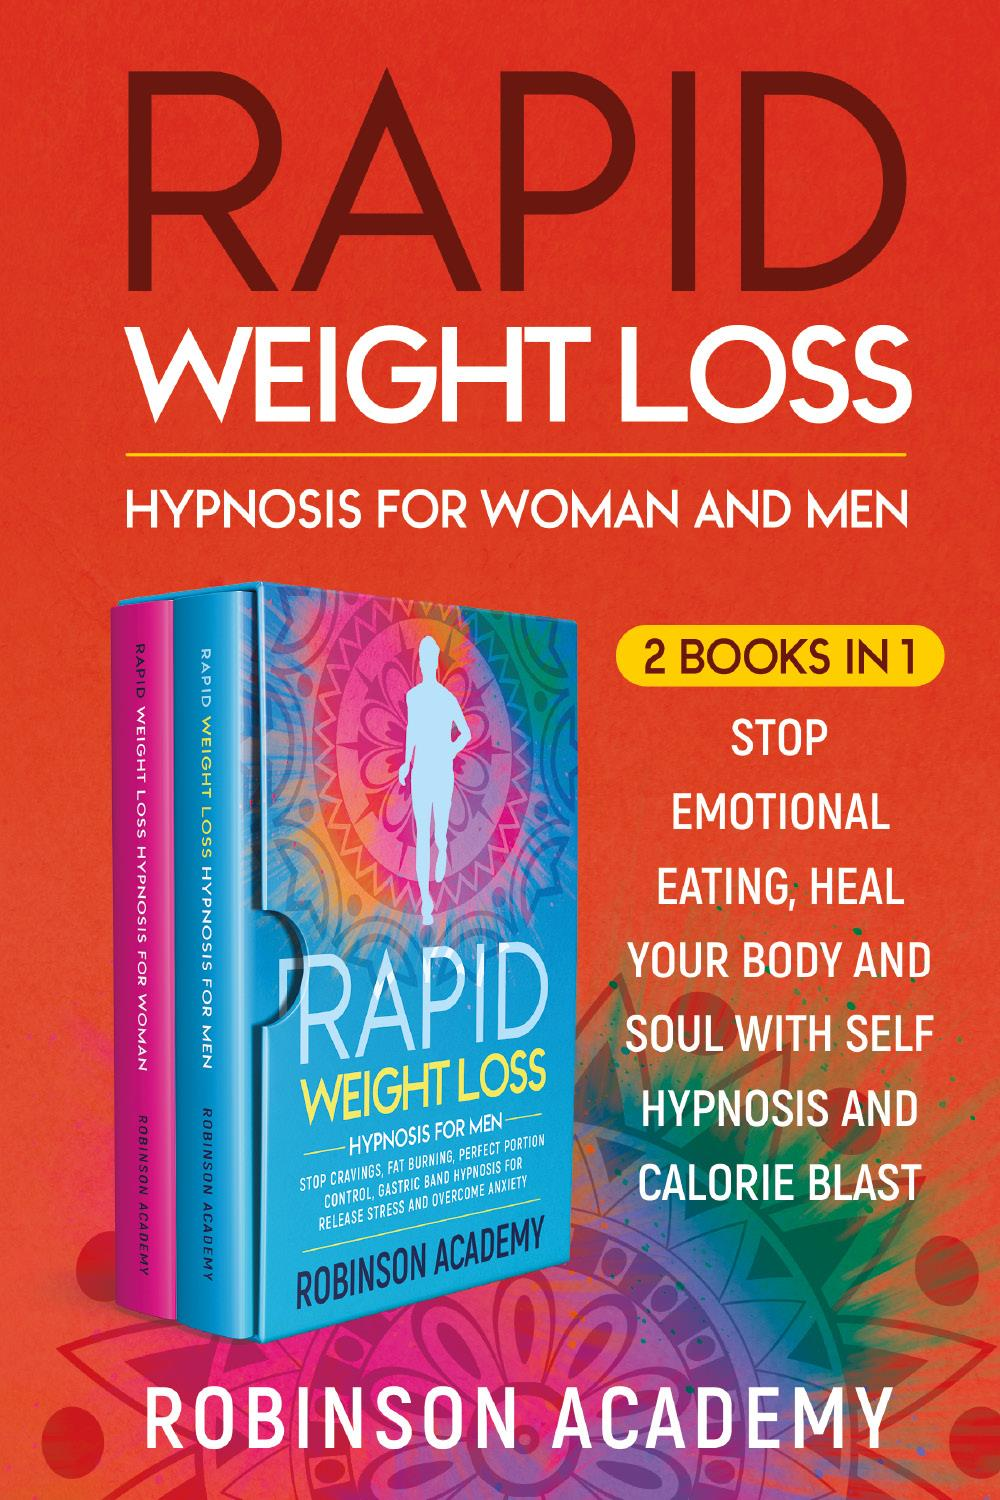 Rapid Weight Loss Hypnosis for Woman and Men (2 Books in 1)